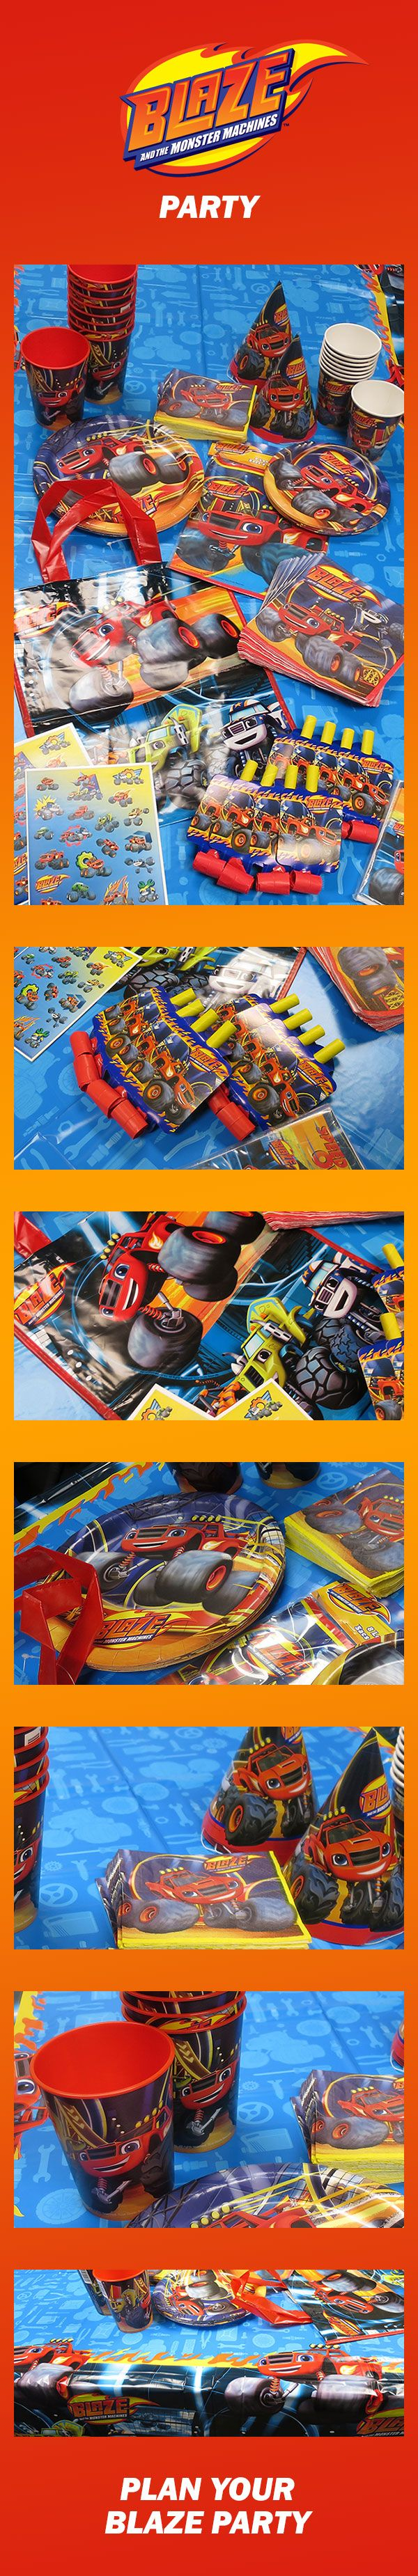 Blaze is back with a new party design! Blaze & the Monster Machines party supplies, one of the hottest themes for boy birthday parties, feature everything from tableware & decorations to favors & invitations. Start your planning now: http://www.discountpartysupplies.com/boy-party-supplies/blaze-and-the-monster-machines?utm_source=Pinterest&utm_medium=social&utm_content=PinterestSkyscraperImage&utm_campaign=BlazePromotedPin-2